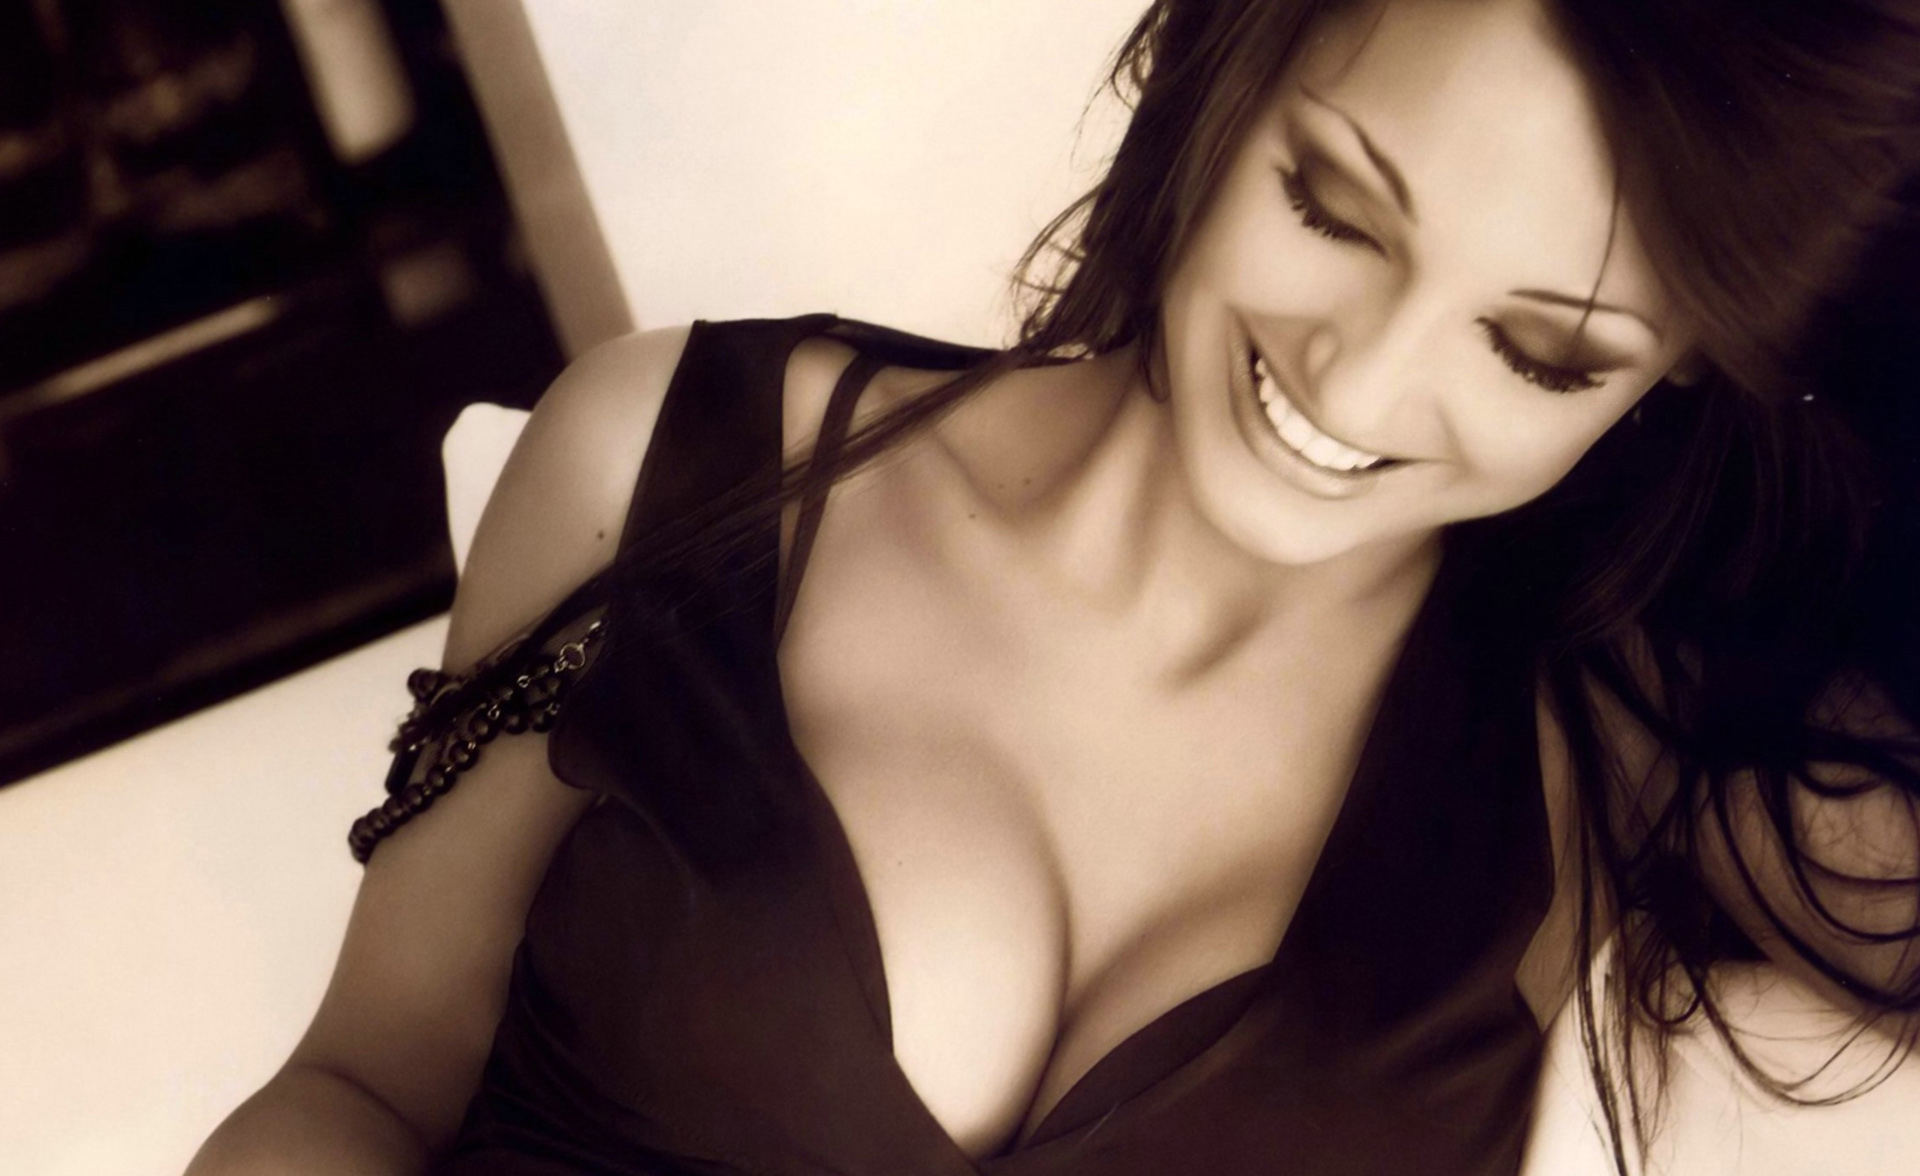 Cleavage Anna Tatangelo nudes (16 foto and video), Pussy, Leaked, Twitter, cleavage 2020